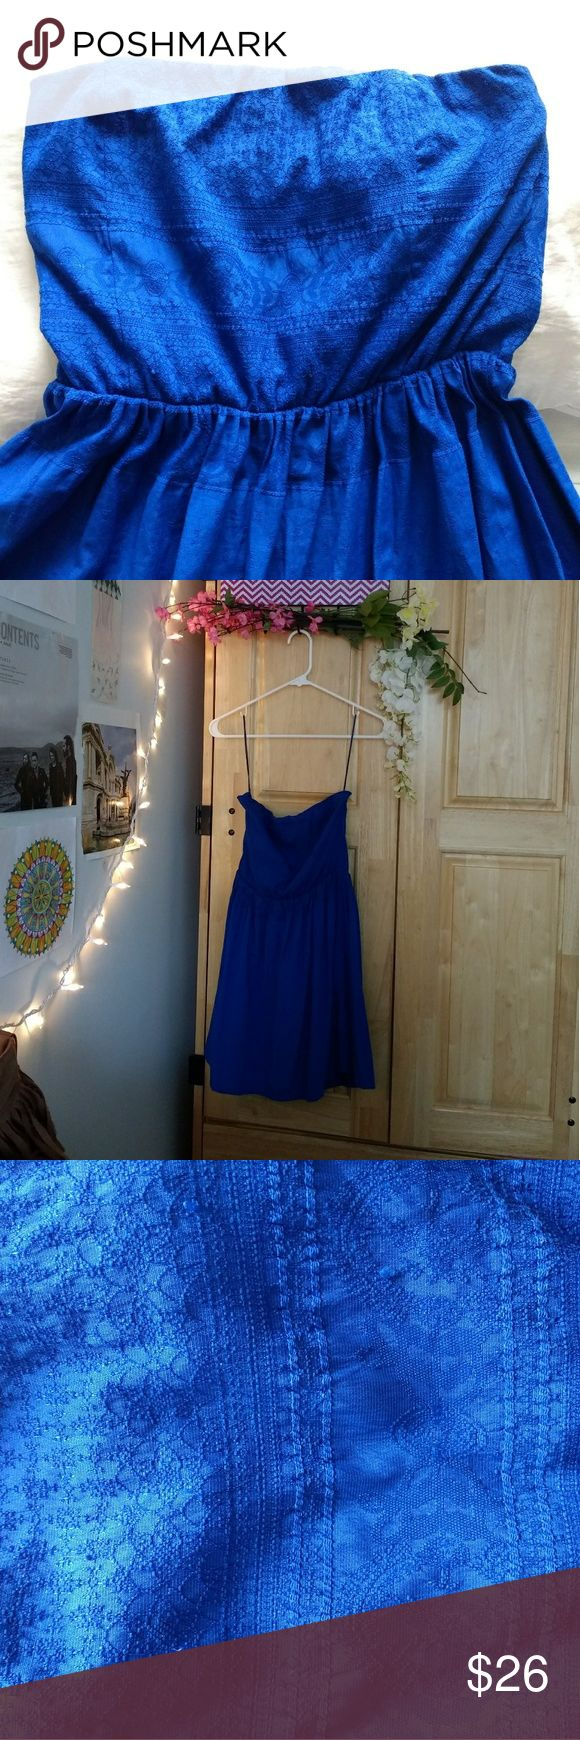 Bershka Blue Strapless Dress Beautiful rich blue dress that can be used for formal events you can dress it up or down.   100% Cotton with lining.  Worn once for a graduation. Bershka Dresses Strapless